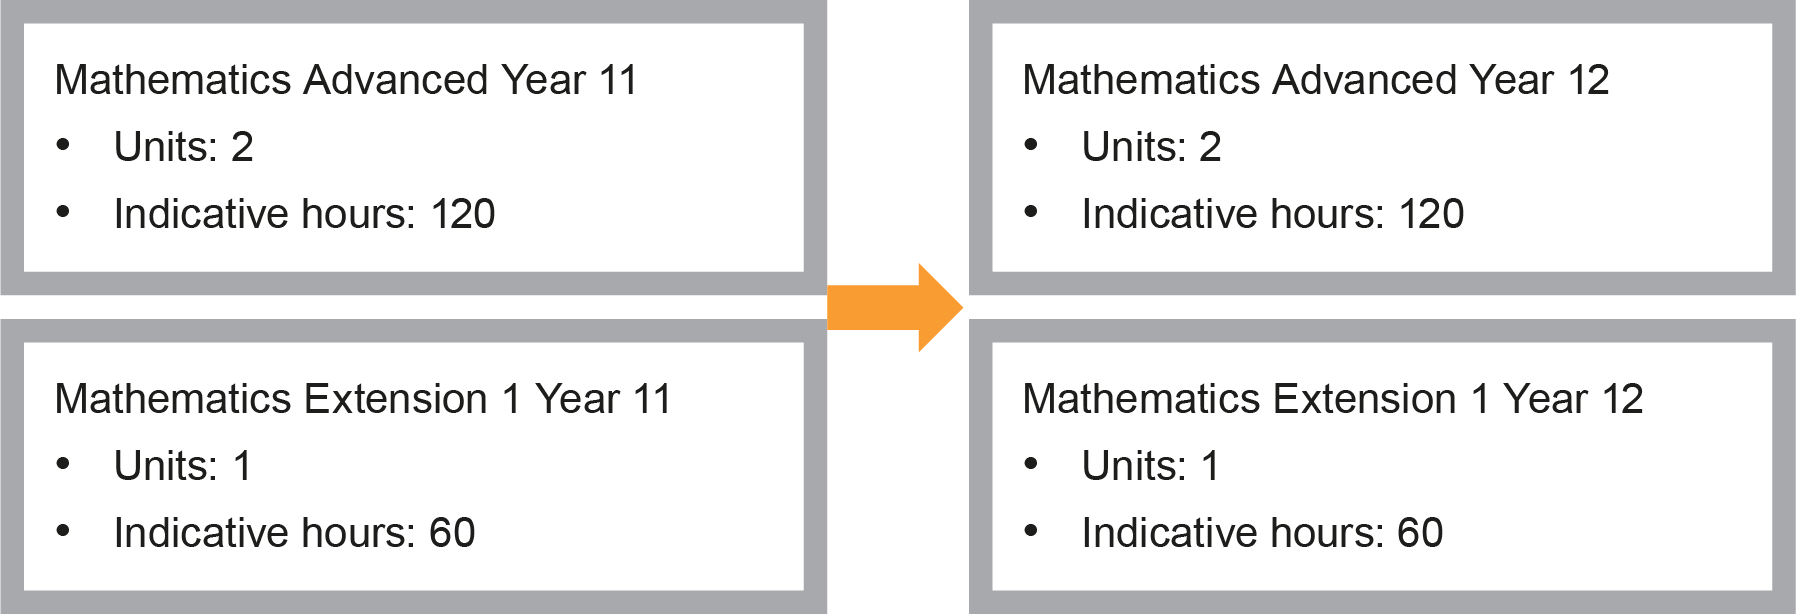 Diagram of the progression of Mathematics Advanced Year 11 (2 units, 120 indicative hours) and Mathematics Extension 1 Year 11 (1 unit, 60 indicative hours) to Mathematics Advanced Year 12 (2 units, 120 indicative hours) and Mathematics Extension 1 Year 12 (1 unit, 60 indicative hours)